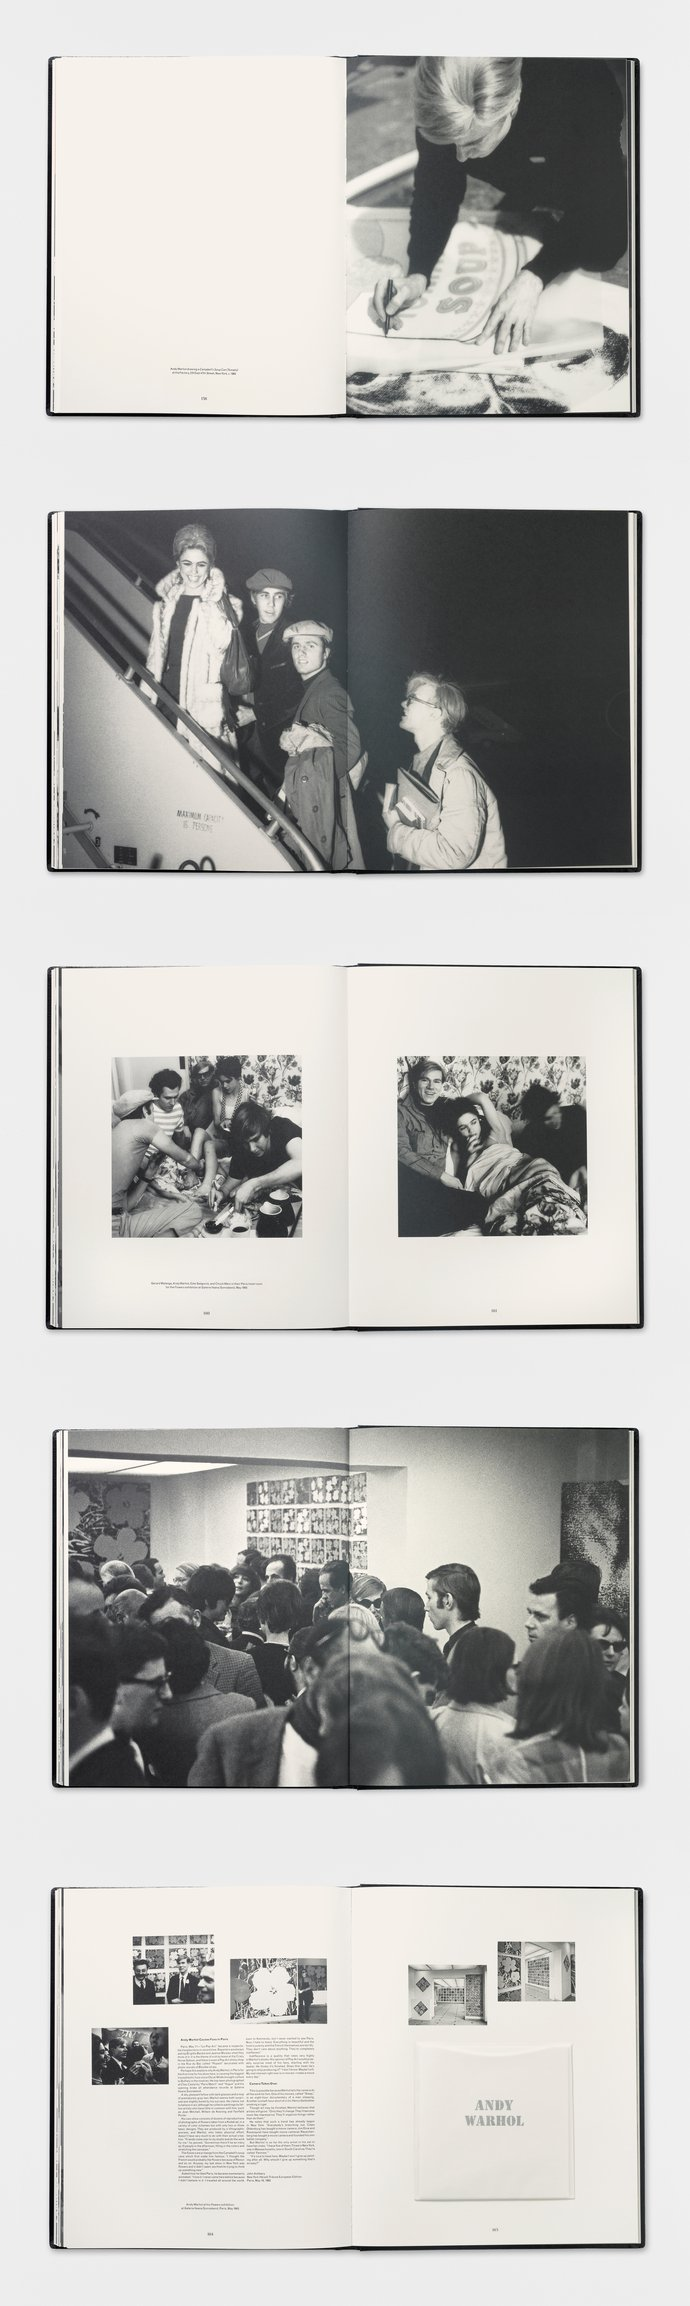 Gagosian – Warhol from the Sonnabend Collection, 2009 (Publication), image 5